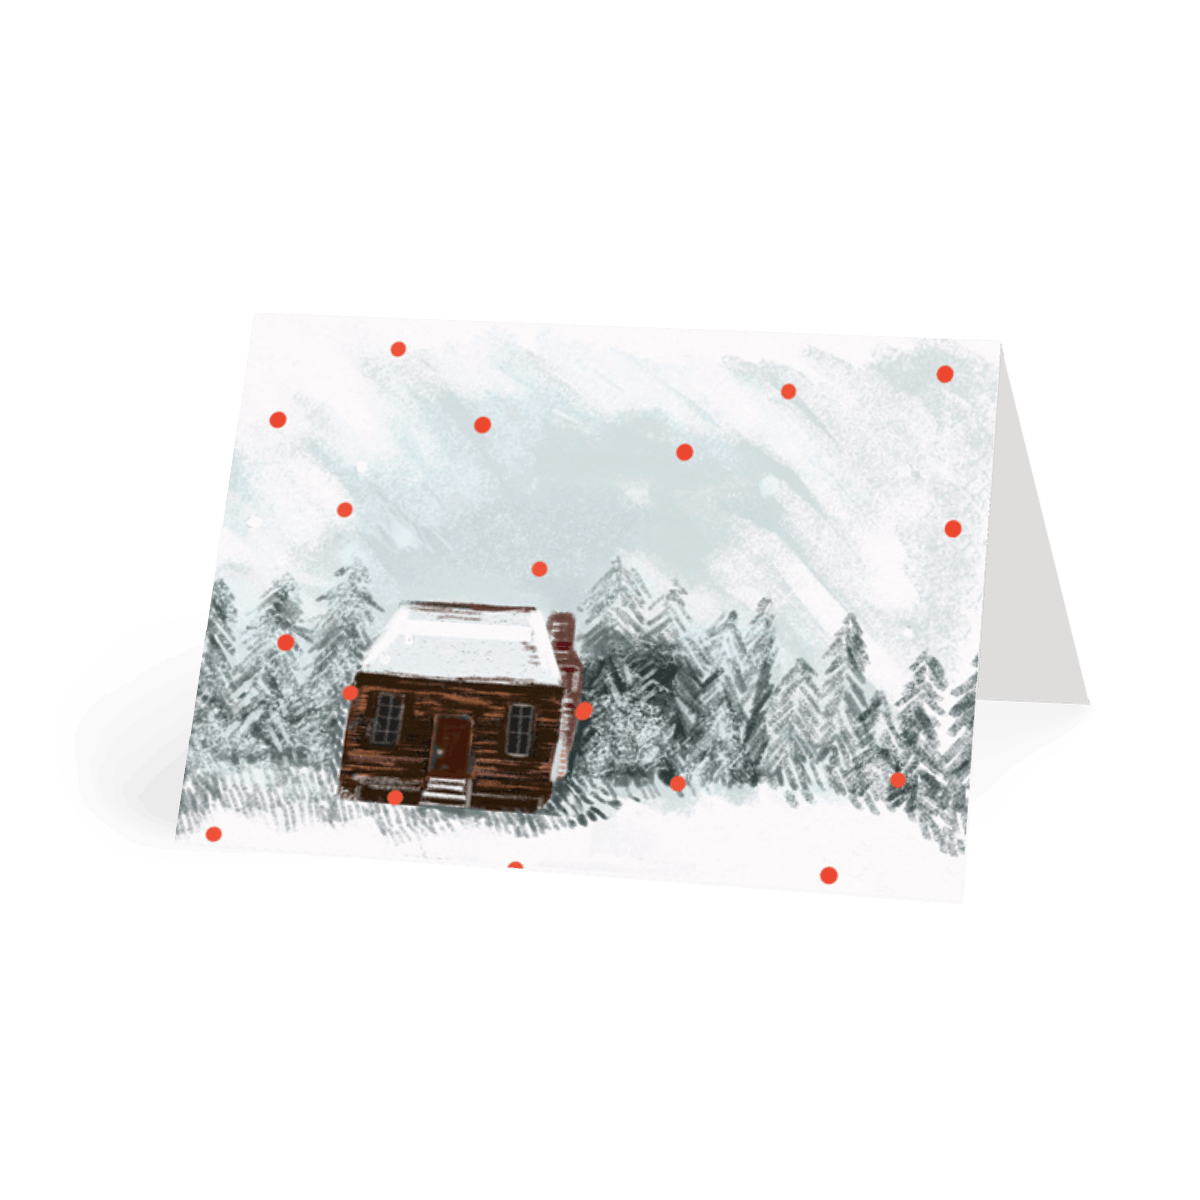 Https%3a%2f%2fwww.papier.com%2fproduct image%2f29293%2f14%2fhappy holidays winter cabin 7358 front 1510741025.png?ixlib=rb 1.1